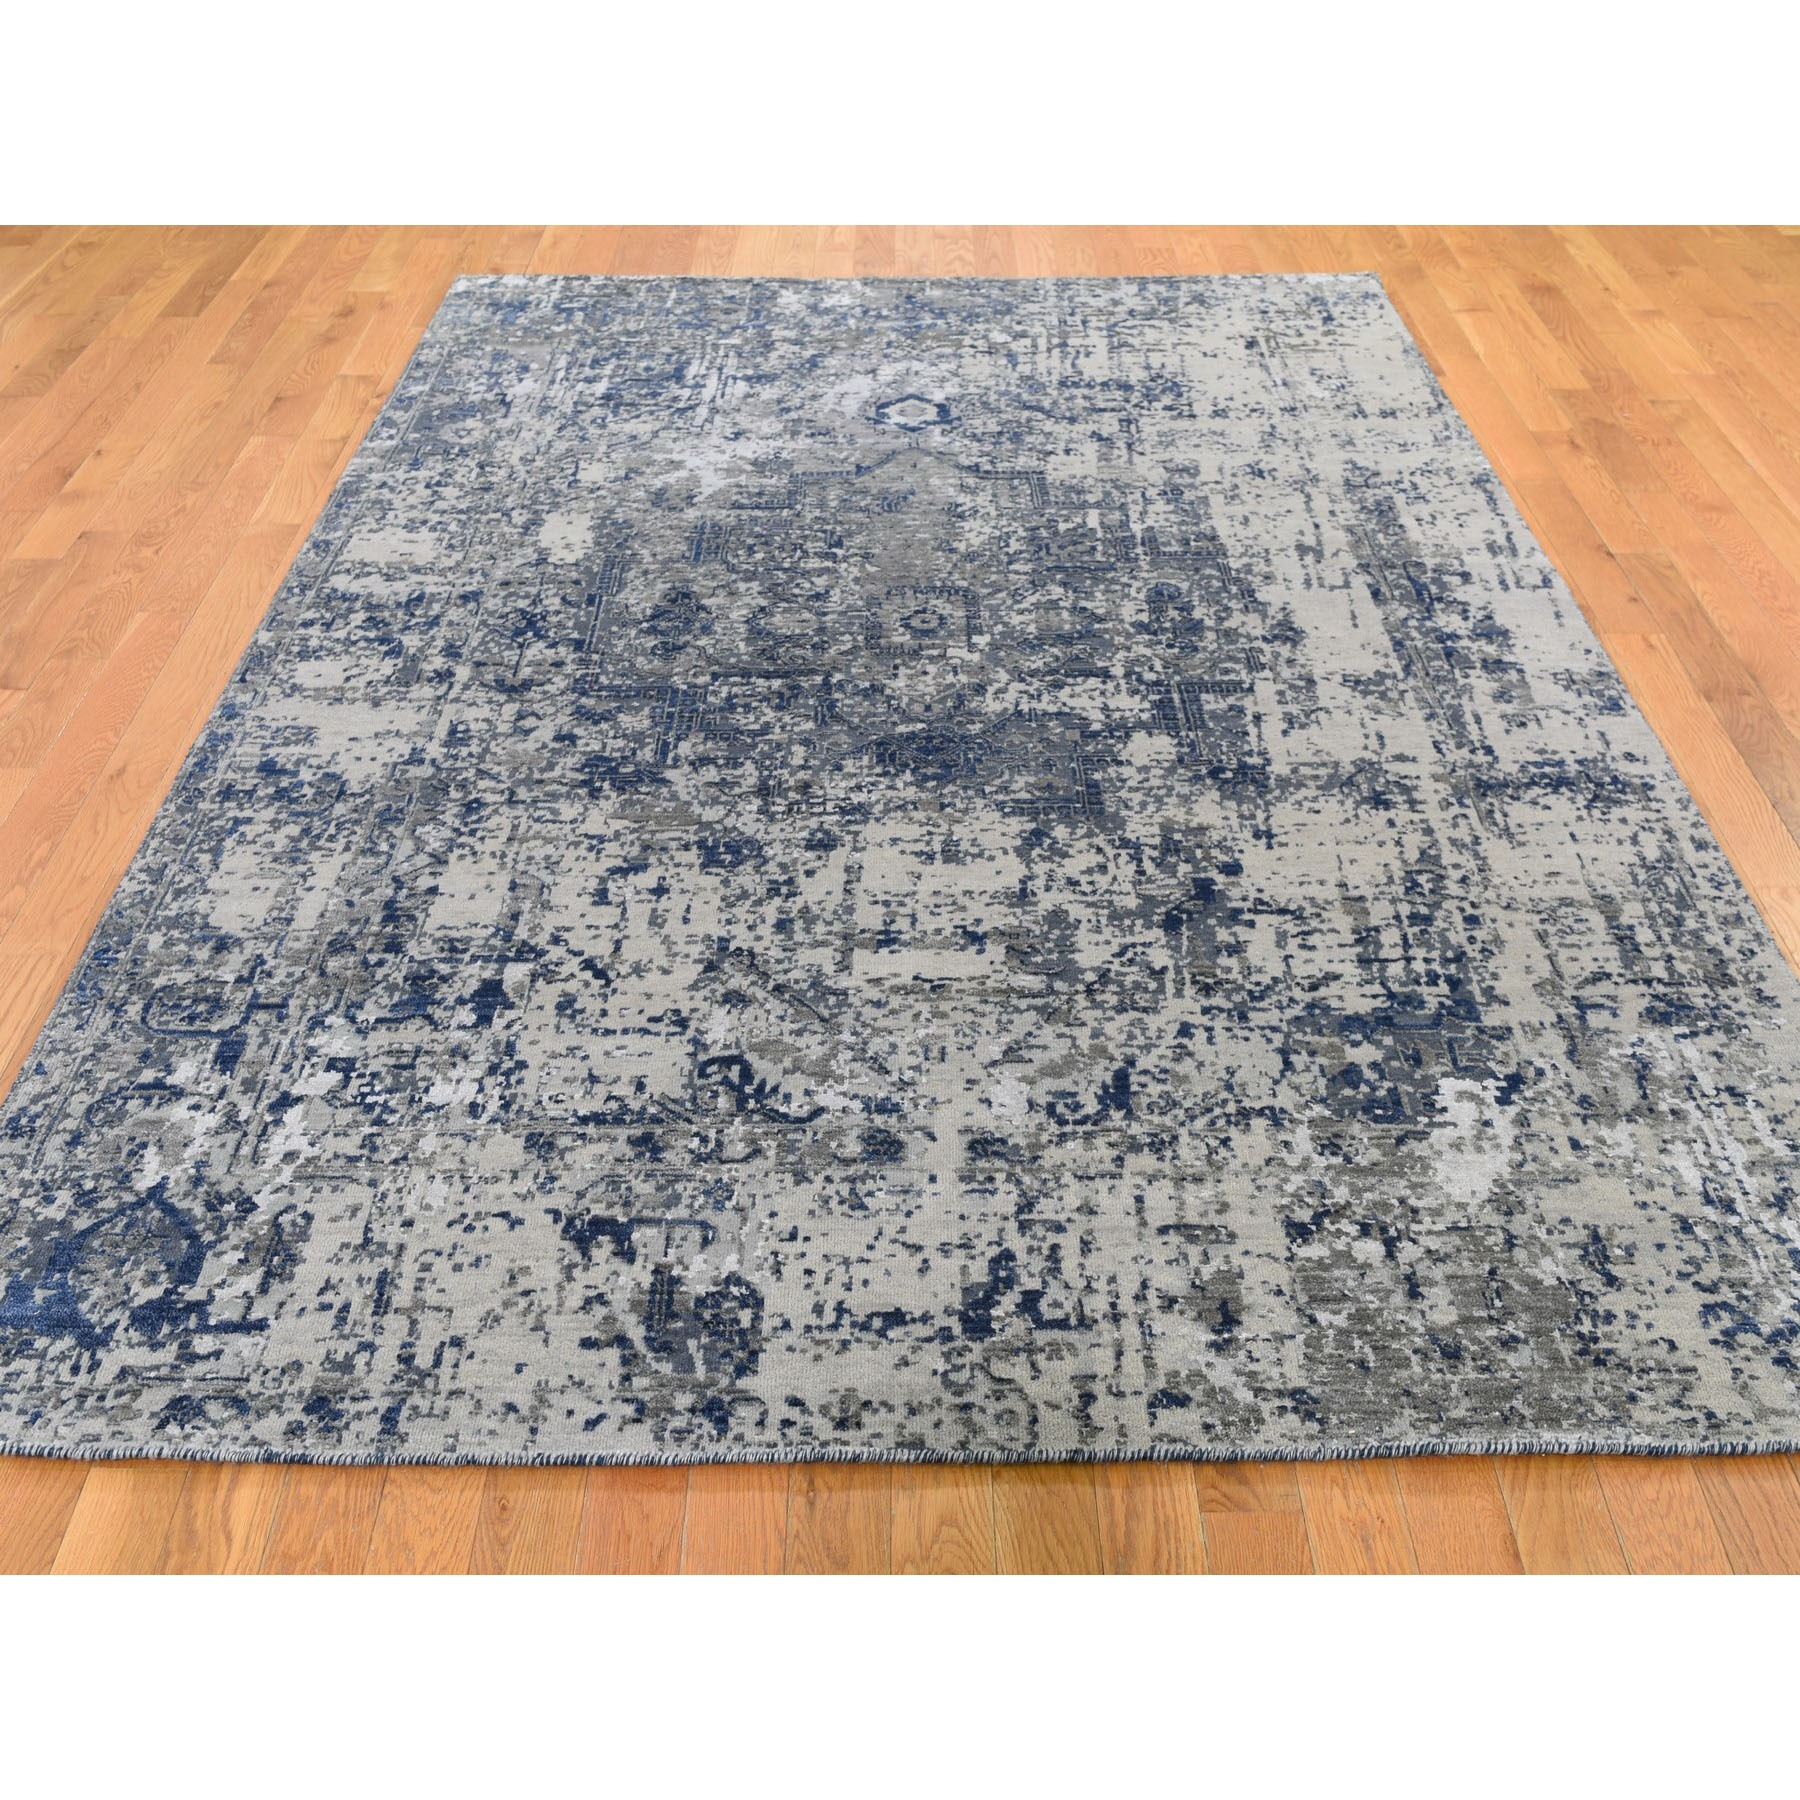 "6'1""x9'1"" Blue-Gray Erased Heriz Design Wool and Silk Hand-Knotted Fine Oriental Rug"